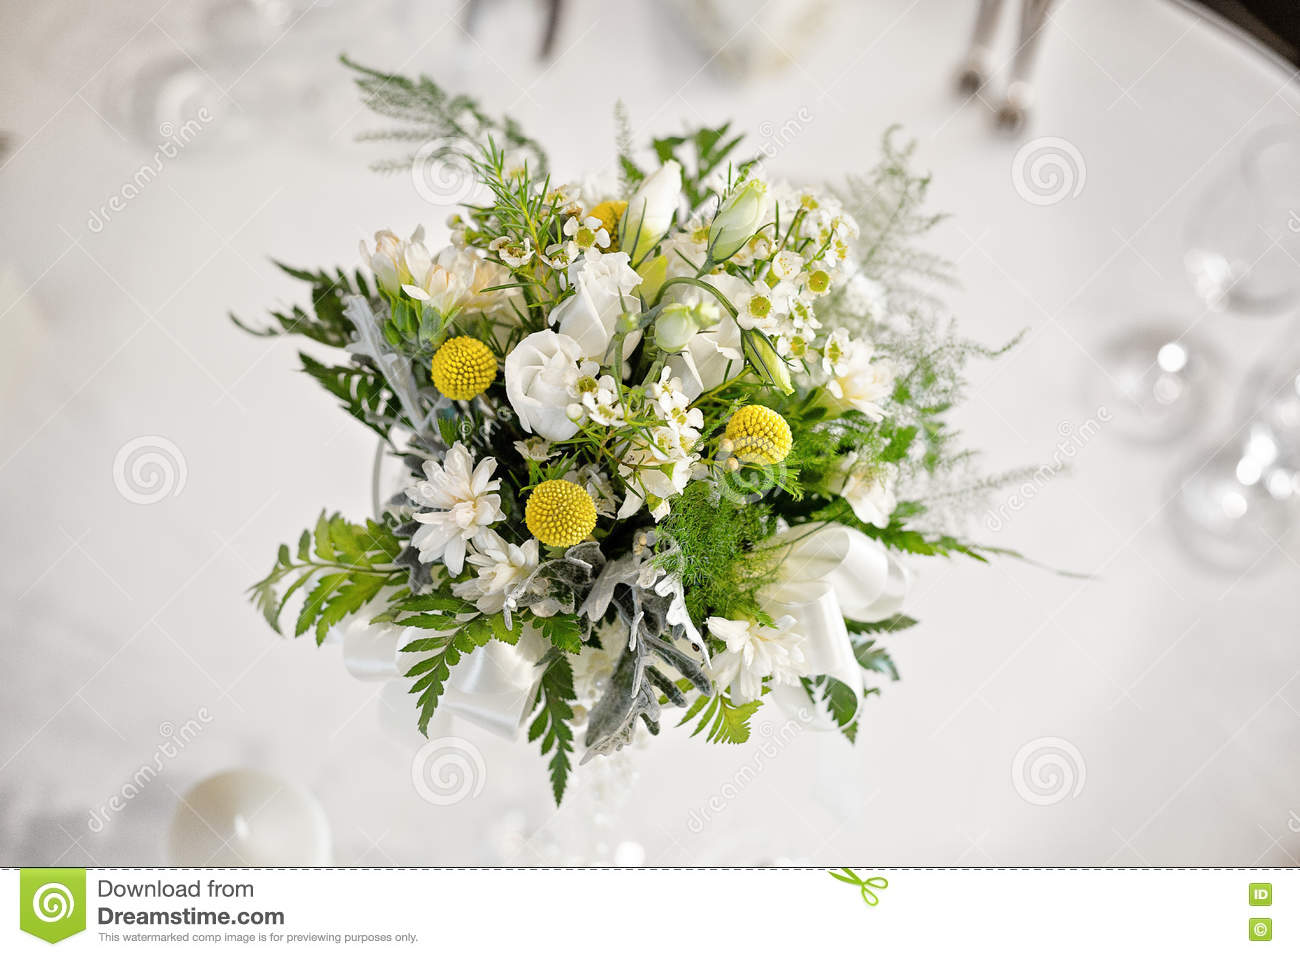 White Wedding Table Flower Center Piece Stock Photo - Image of cloth ...